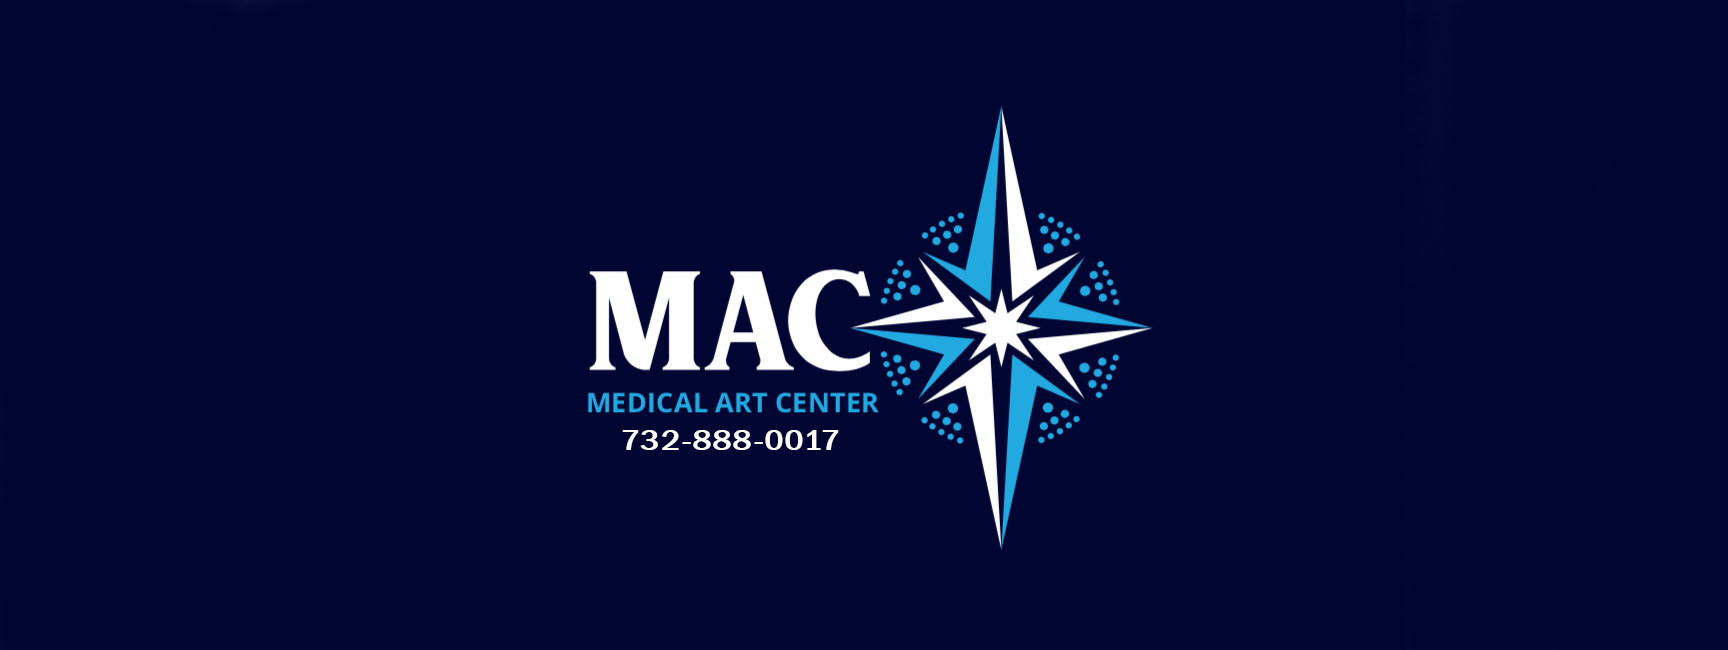 Medical Art Center Logo